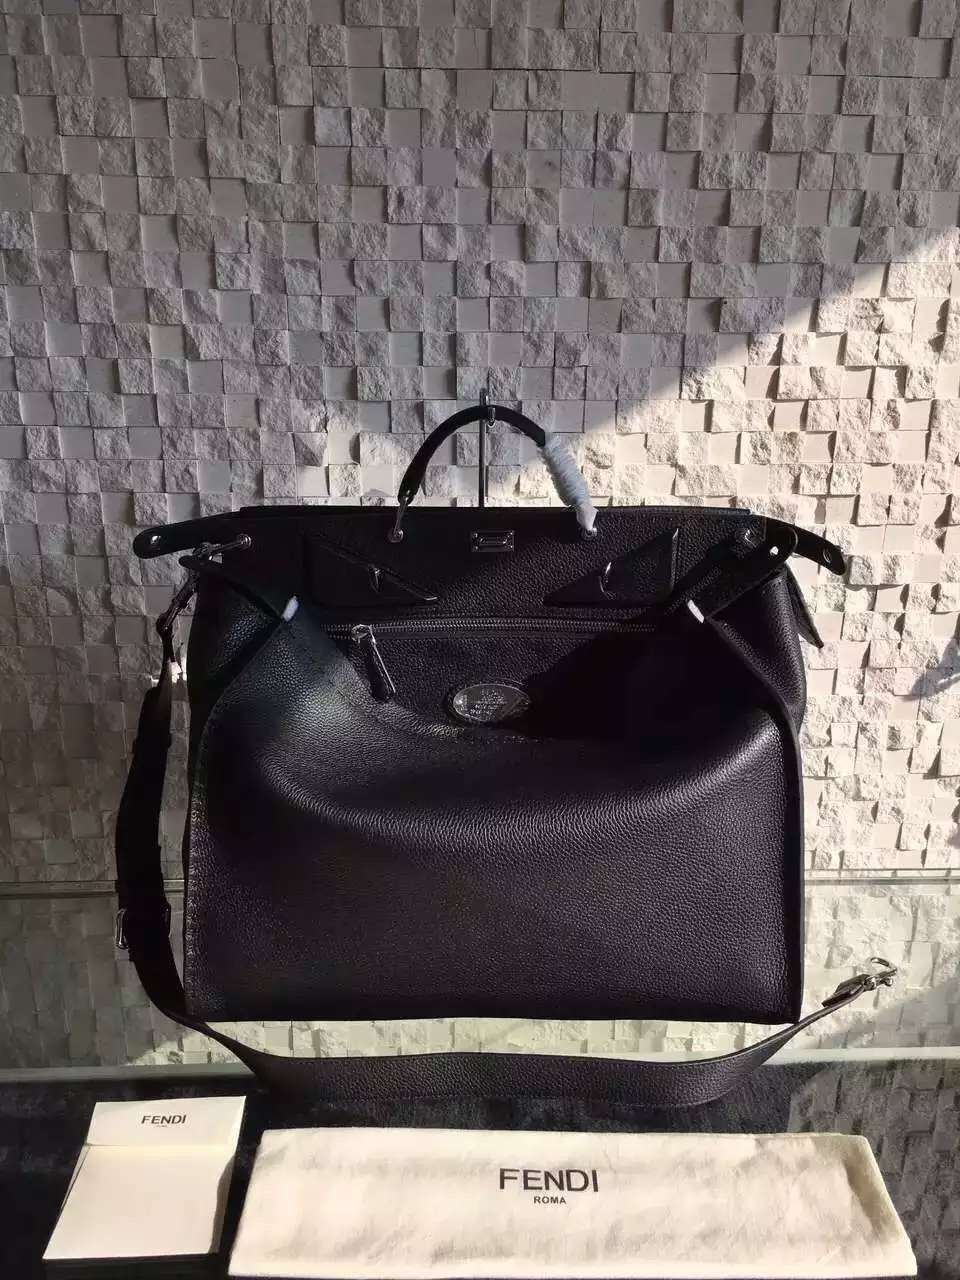 48ac67e8a4f4 Fendi Roman Leather Large Peekaboo Handbag For Men with Raw Edging and Bag  Bugs Eyes Black 2016